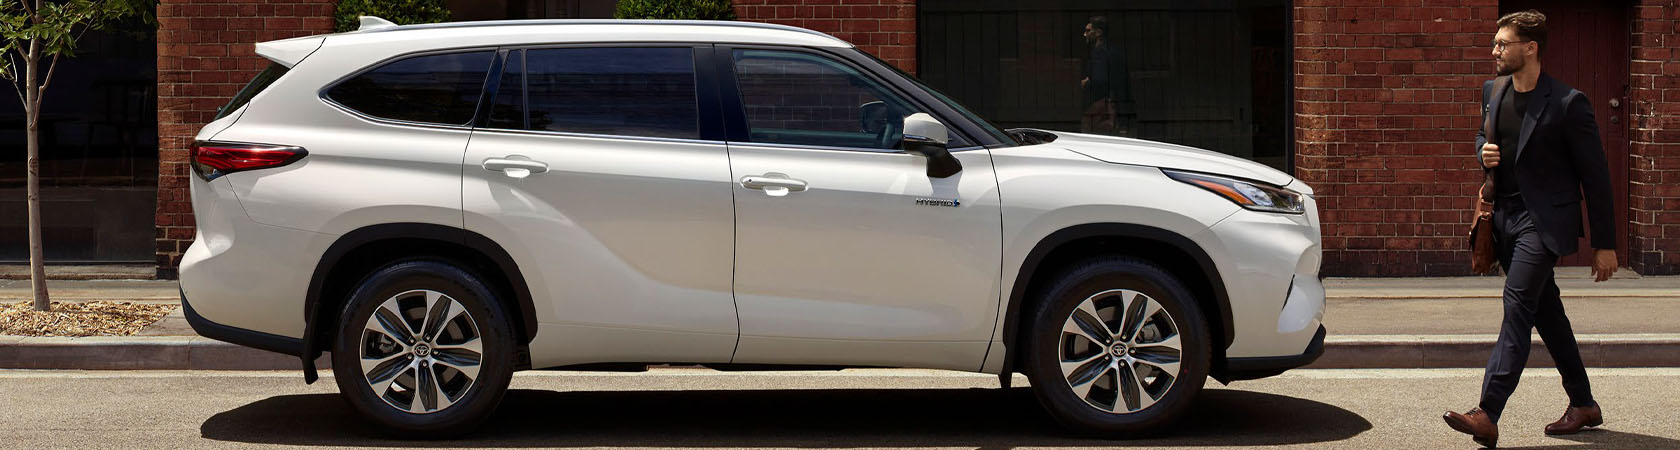 Macquarie Toyota Kluger